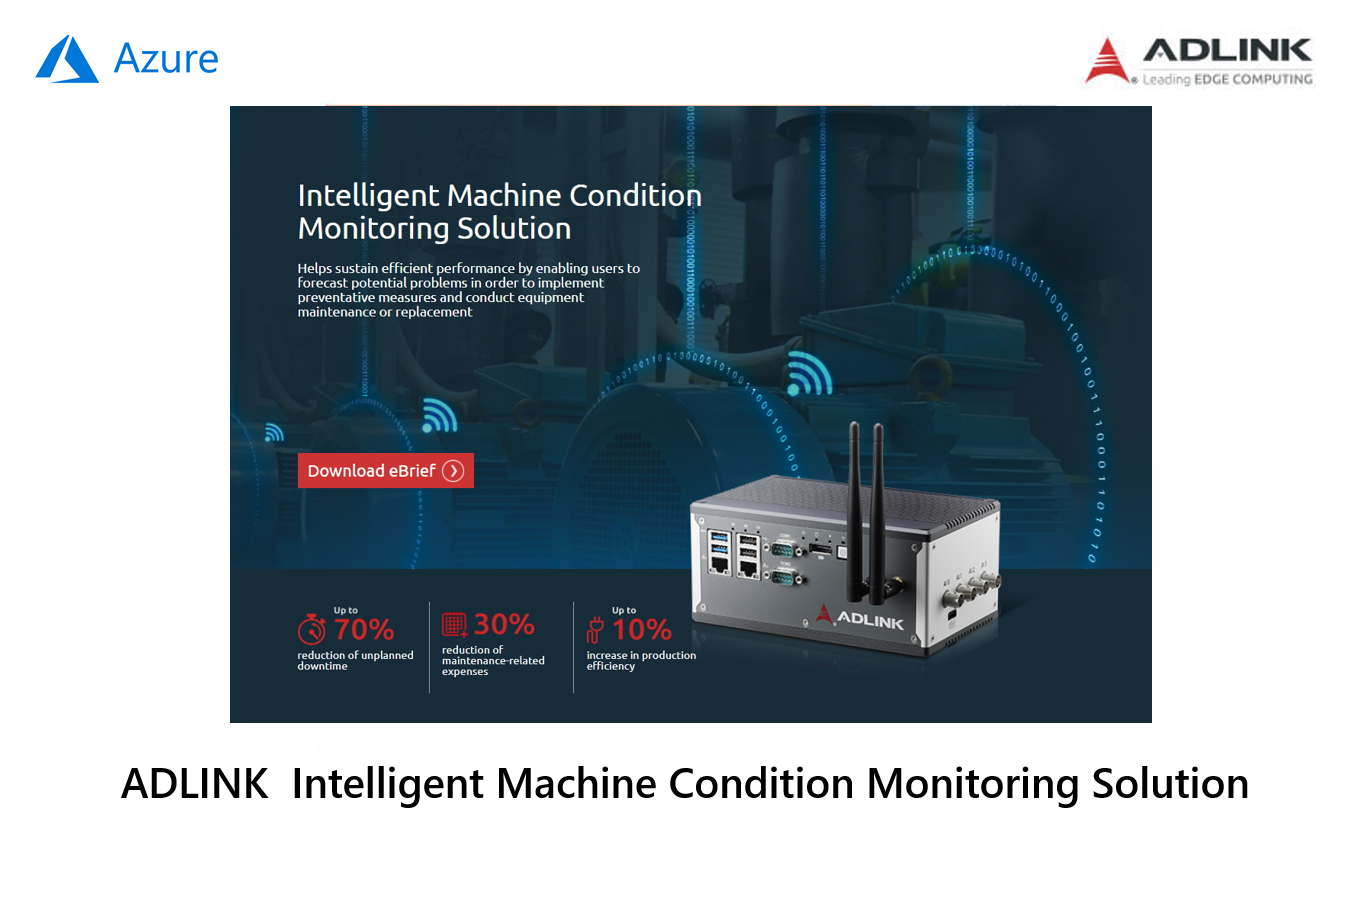 ADLINK MCM-100 Intelligent Machine Condition Monitoring Solution